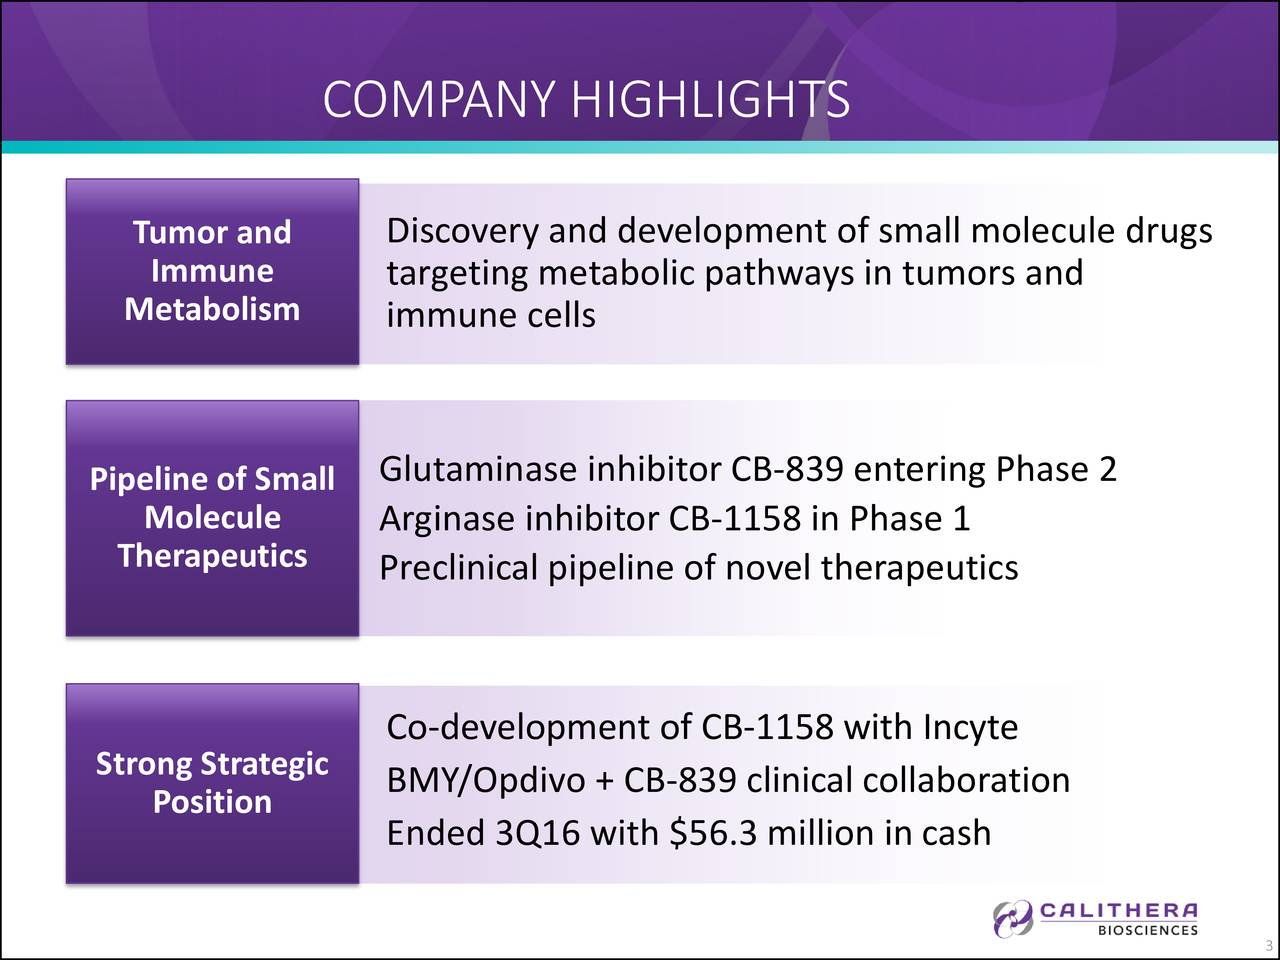 Tumor and Discovery and development of small molecule drugs Immune targeting metabolic pathways in tumors and Metabolism immune cells Pipeline of Small Glutaminase inhibitor CB-839 entering Phase 2 Molecule Arginase inhibitor CB-1158 in Phase 1 Therapeutics Preclinical pipeline of novel therapeutics Co-development of CB-1158 with Incyte Strong Strategic BMY/Opdivo + CB-839 clinical collaboration Position Ended 3Q16 with $56.3 million in cash